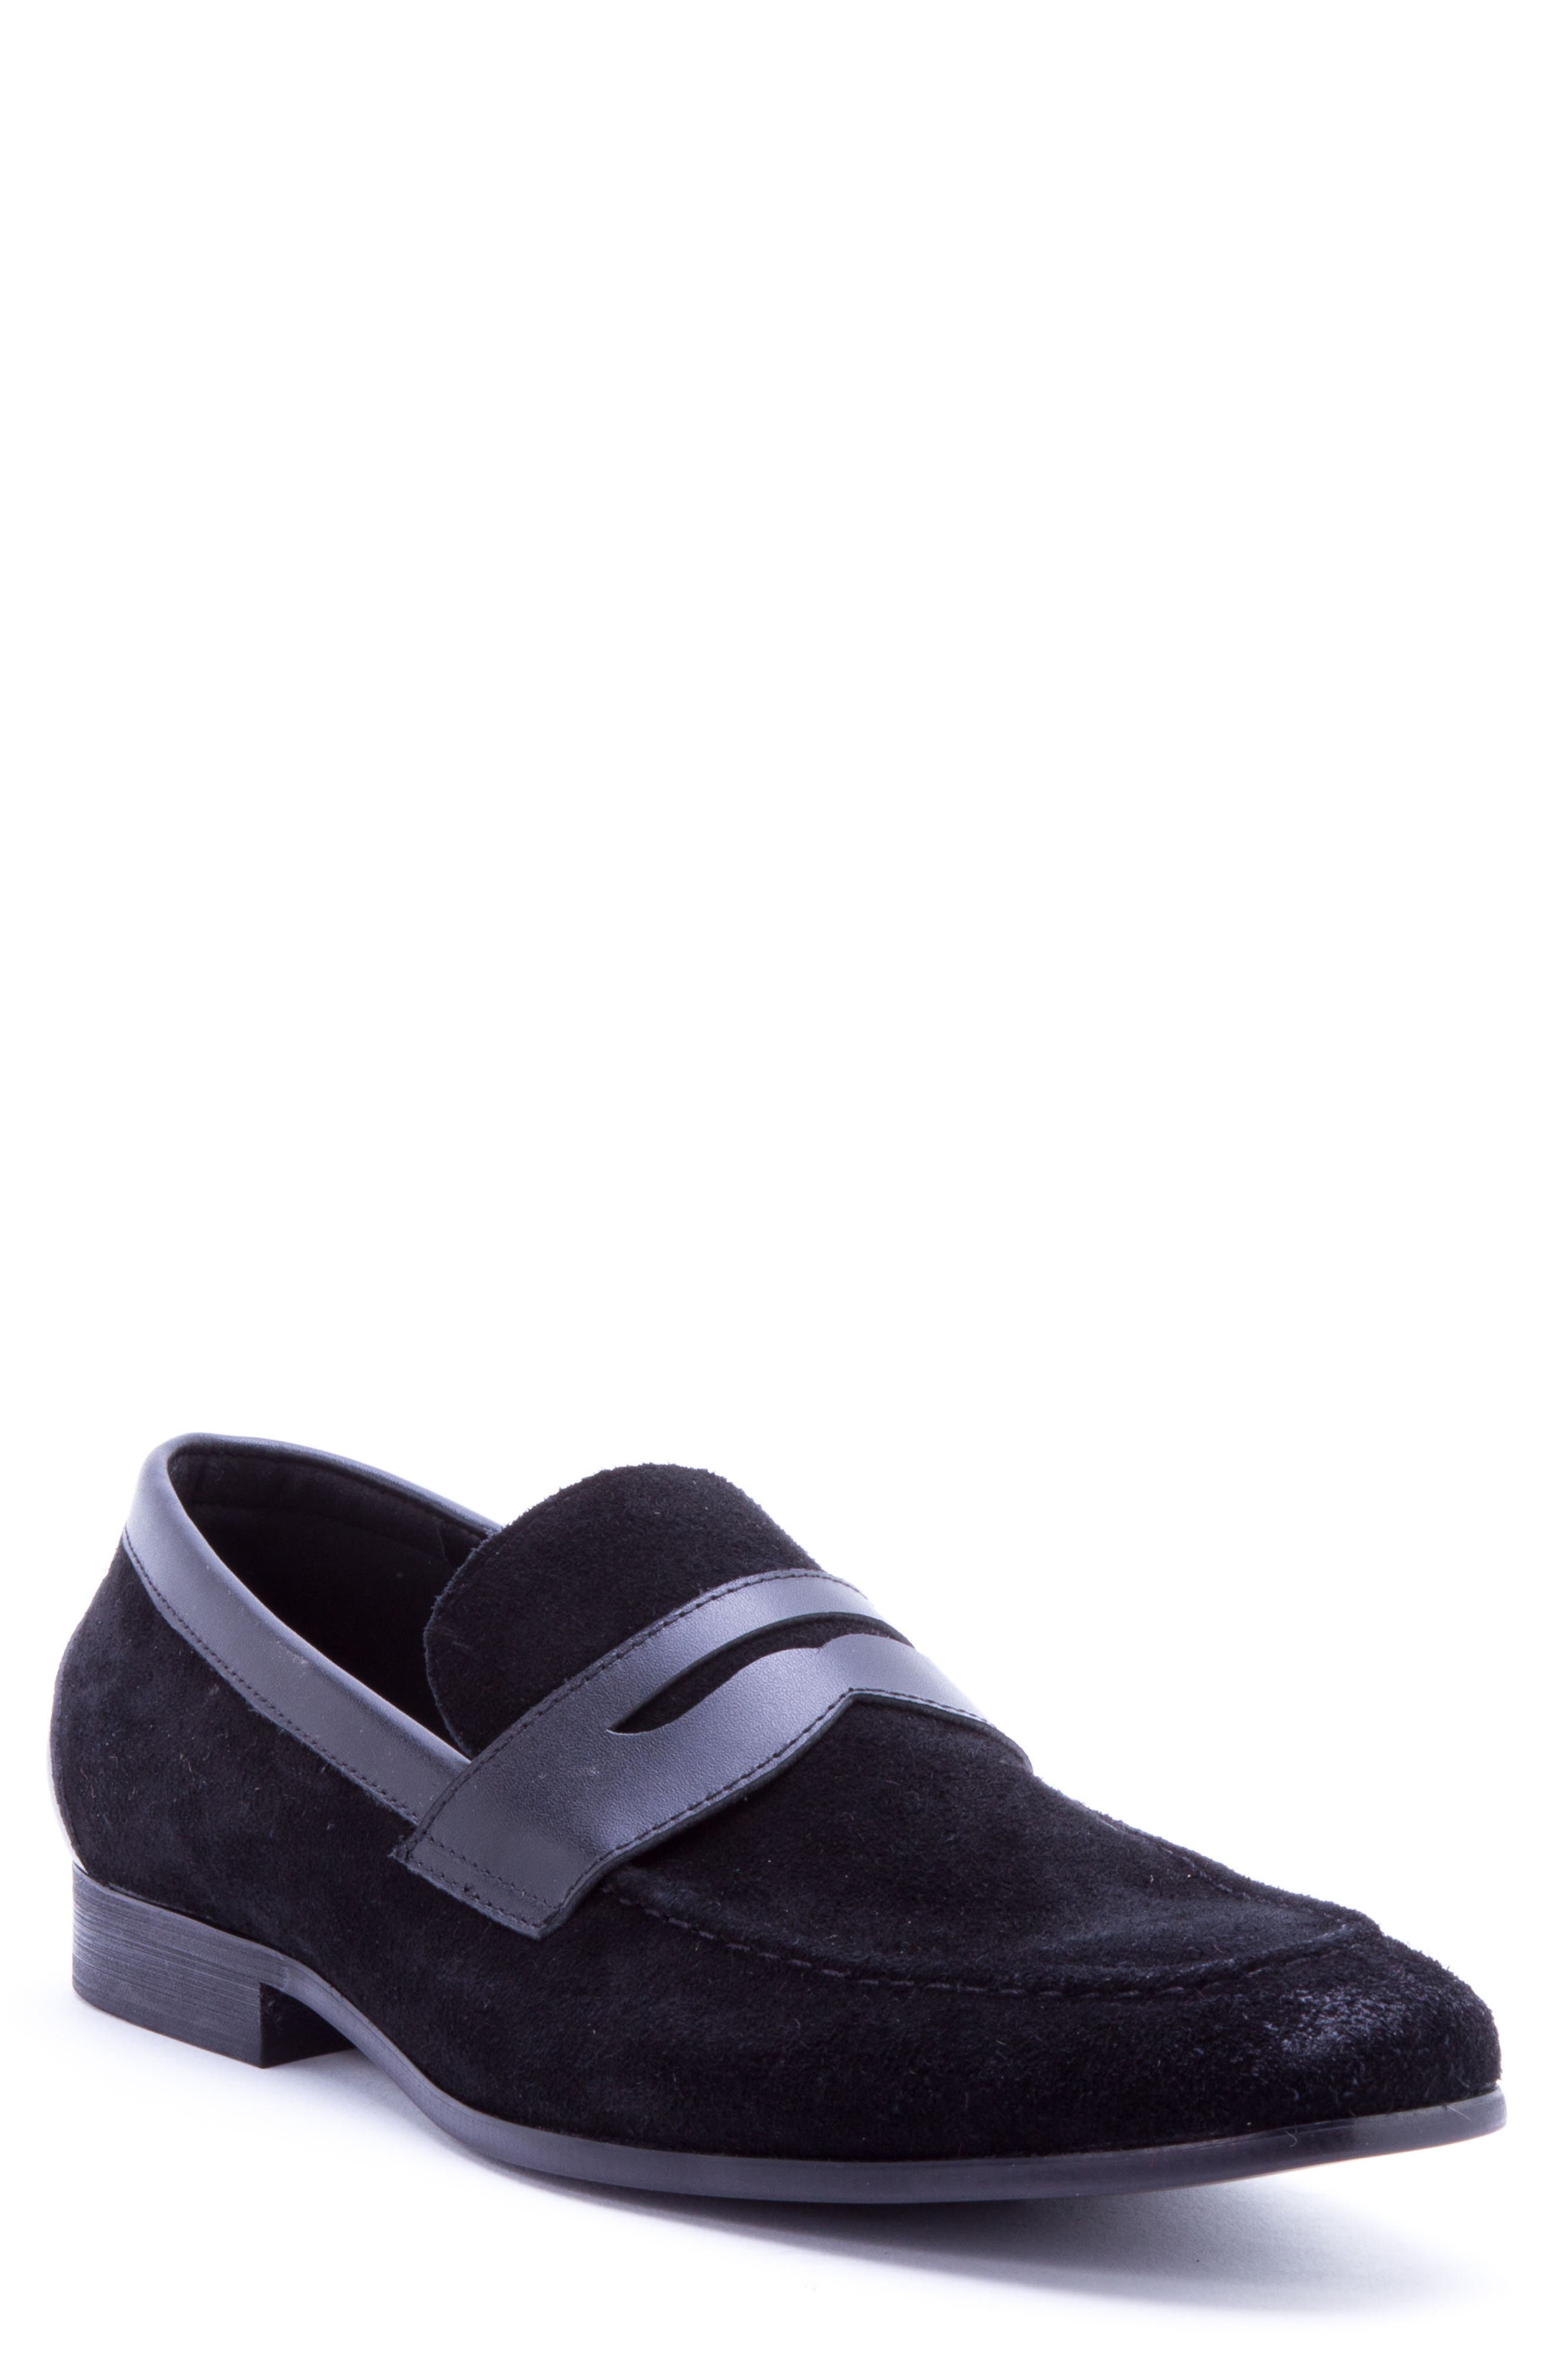 Siena Penny Loafer,                         Main,                         color, Black Suede/ Leather